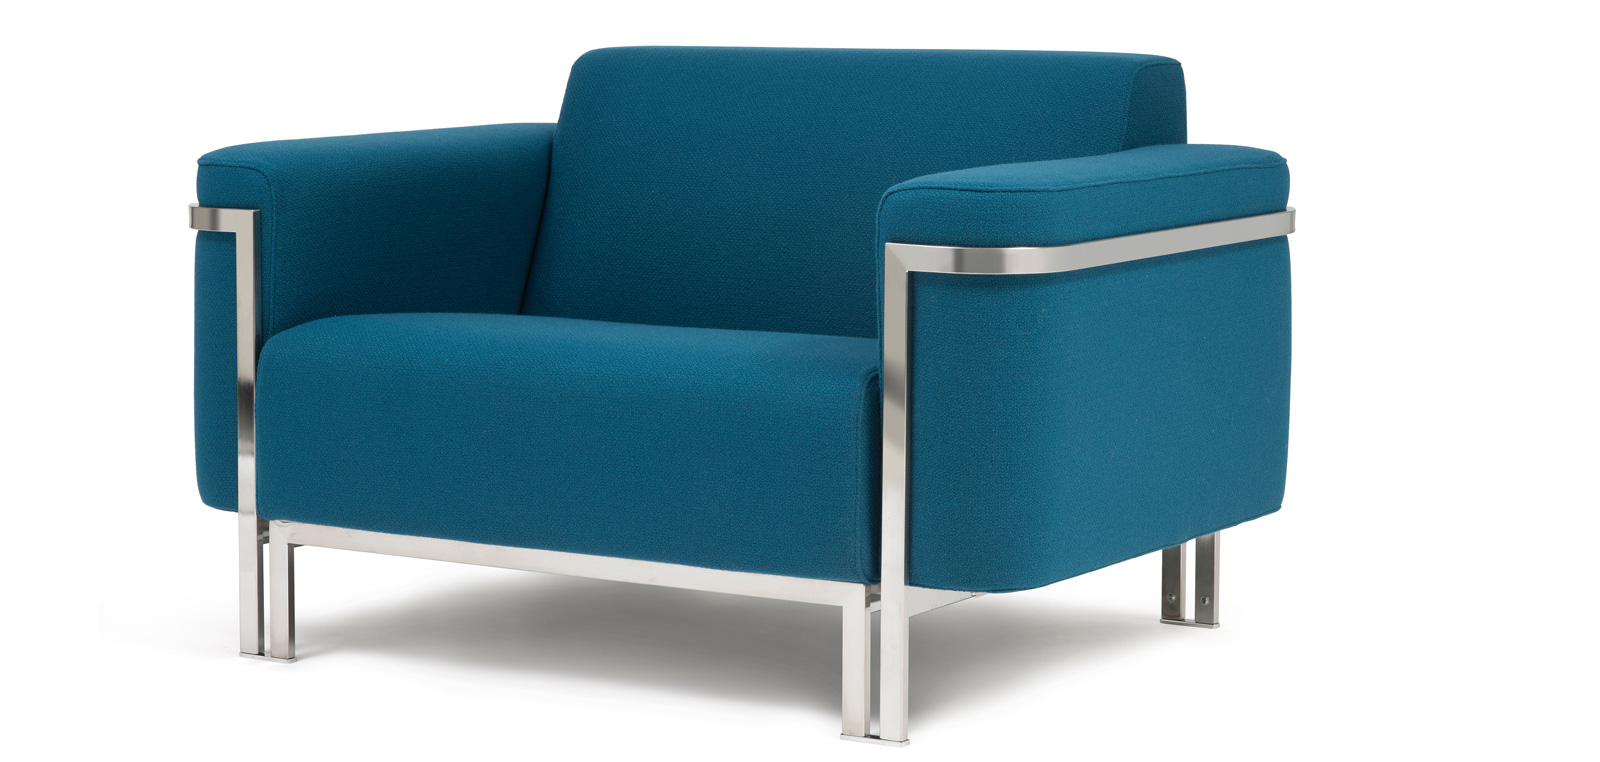 harvink design loveseat